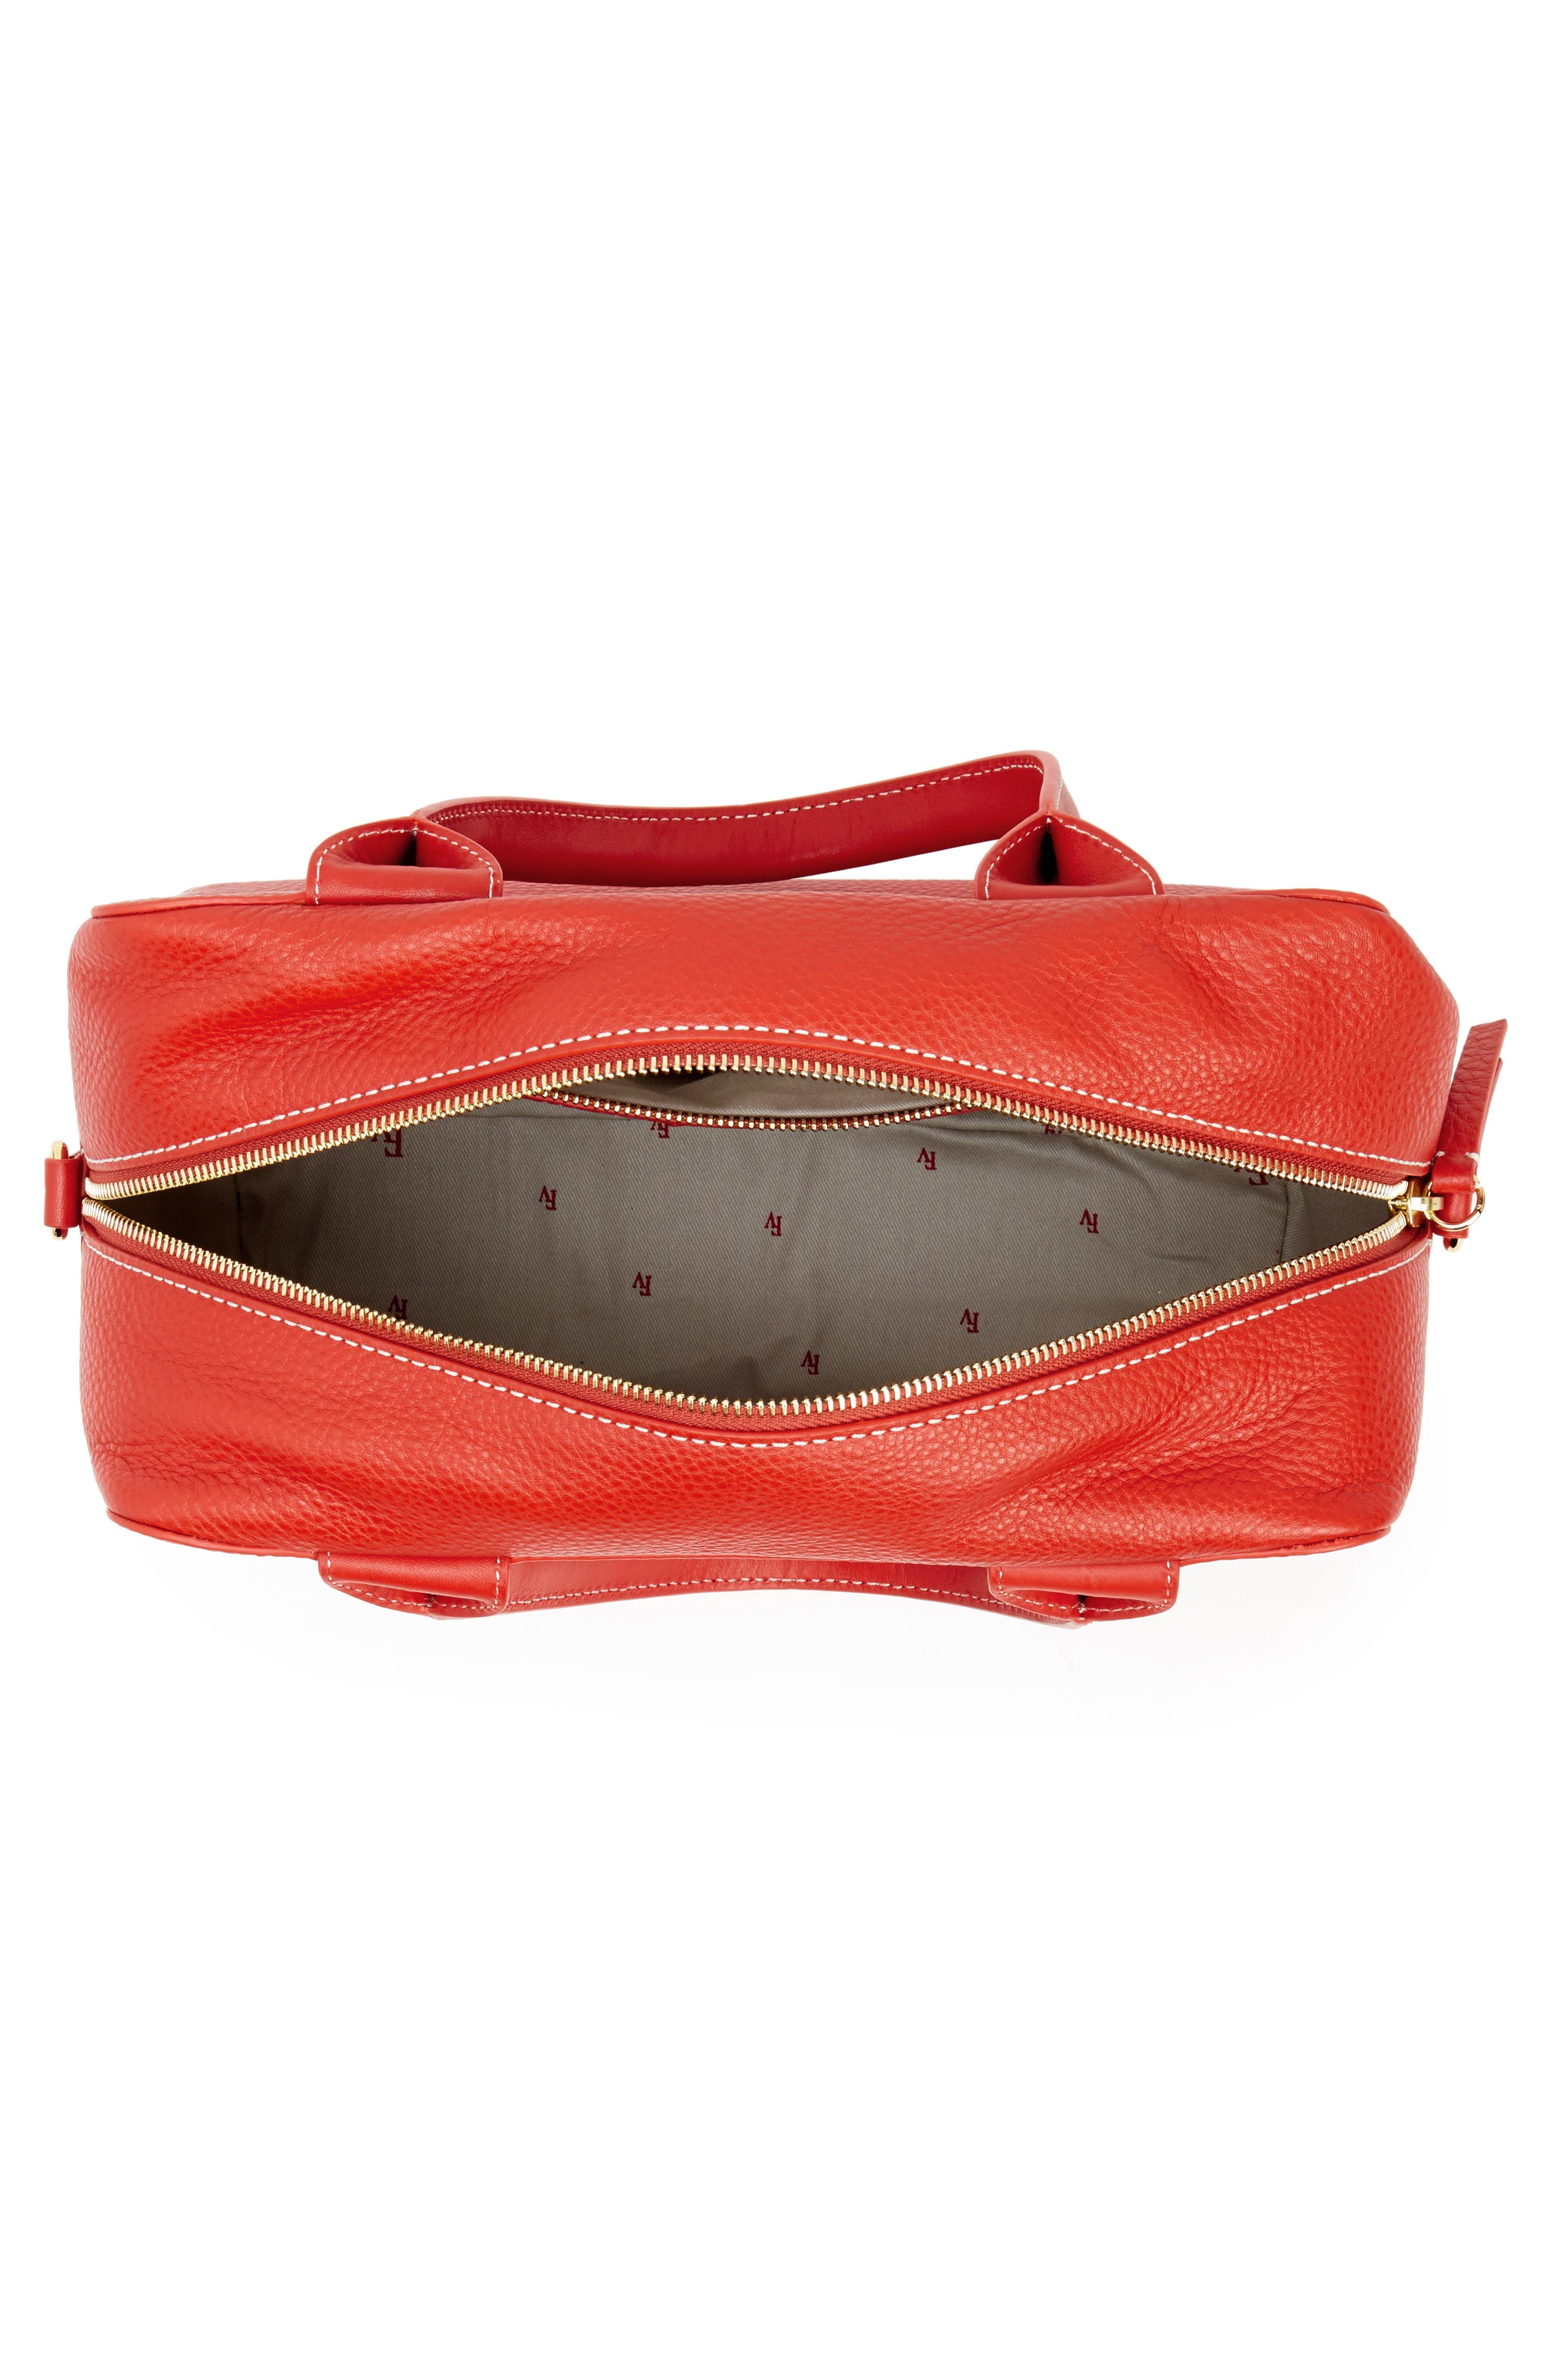 Medium Maddy Satchel,                             Alternate thumbnail 4, color,                             Coral